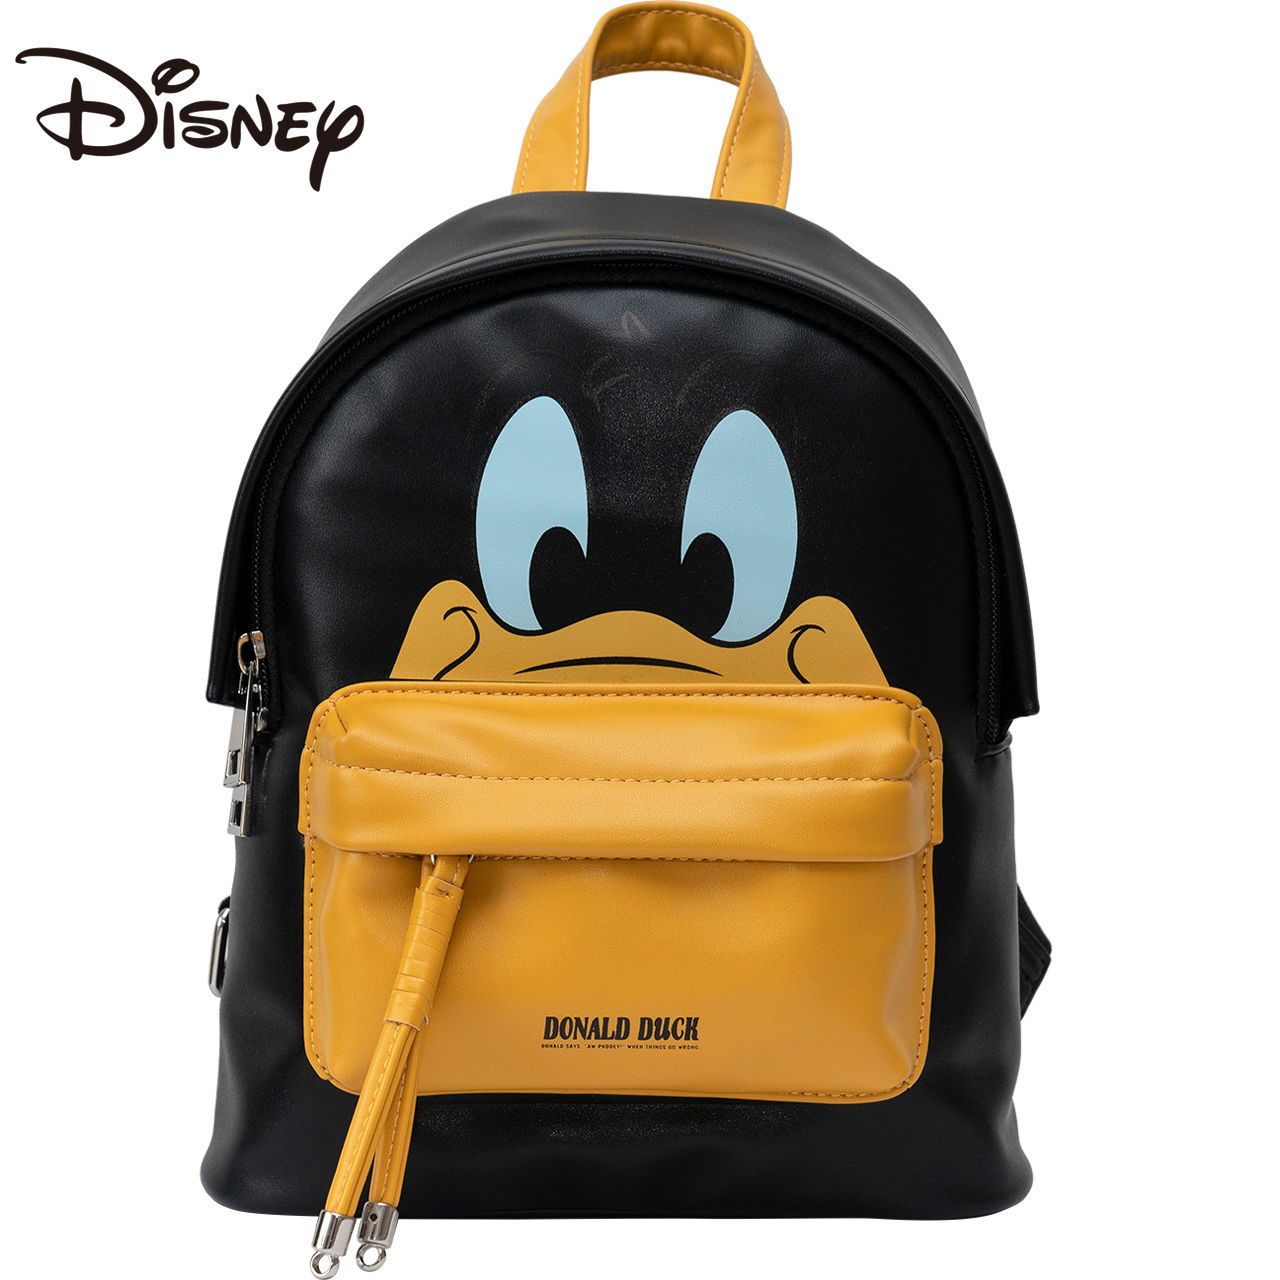 Disney Co-branded Authentic Cartoon Donald Duck Fashion Casual Multi-function Large-capacity Travel Backpack Lady Backpack